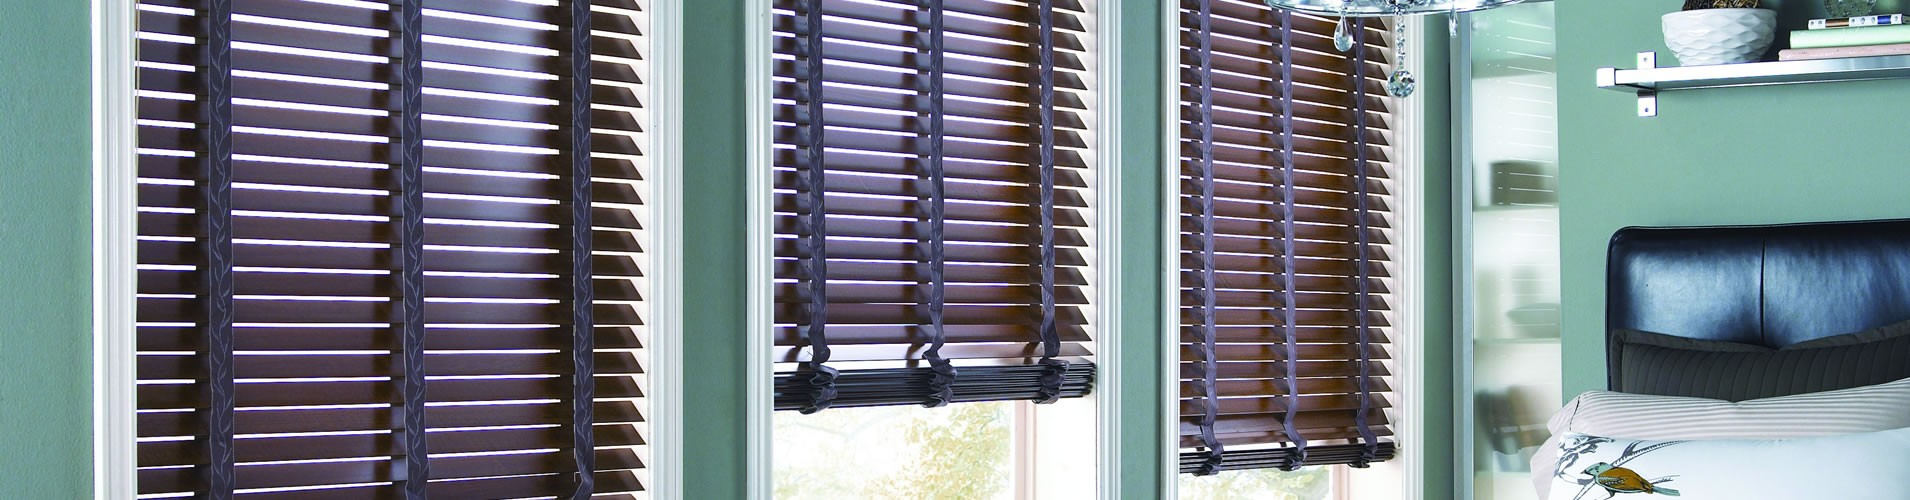 softer window and is usa shades rollershades blinds shade with up a our treatment riviera to en office bottom down cordless option for custom cellular top charcoal made go